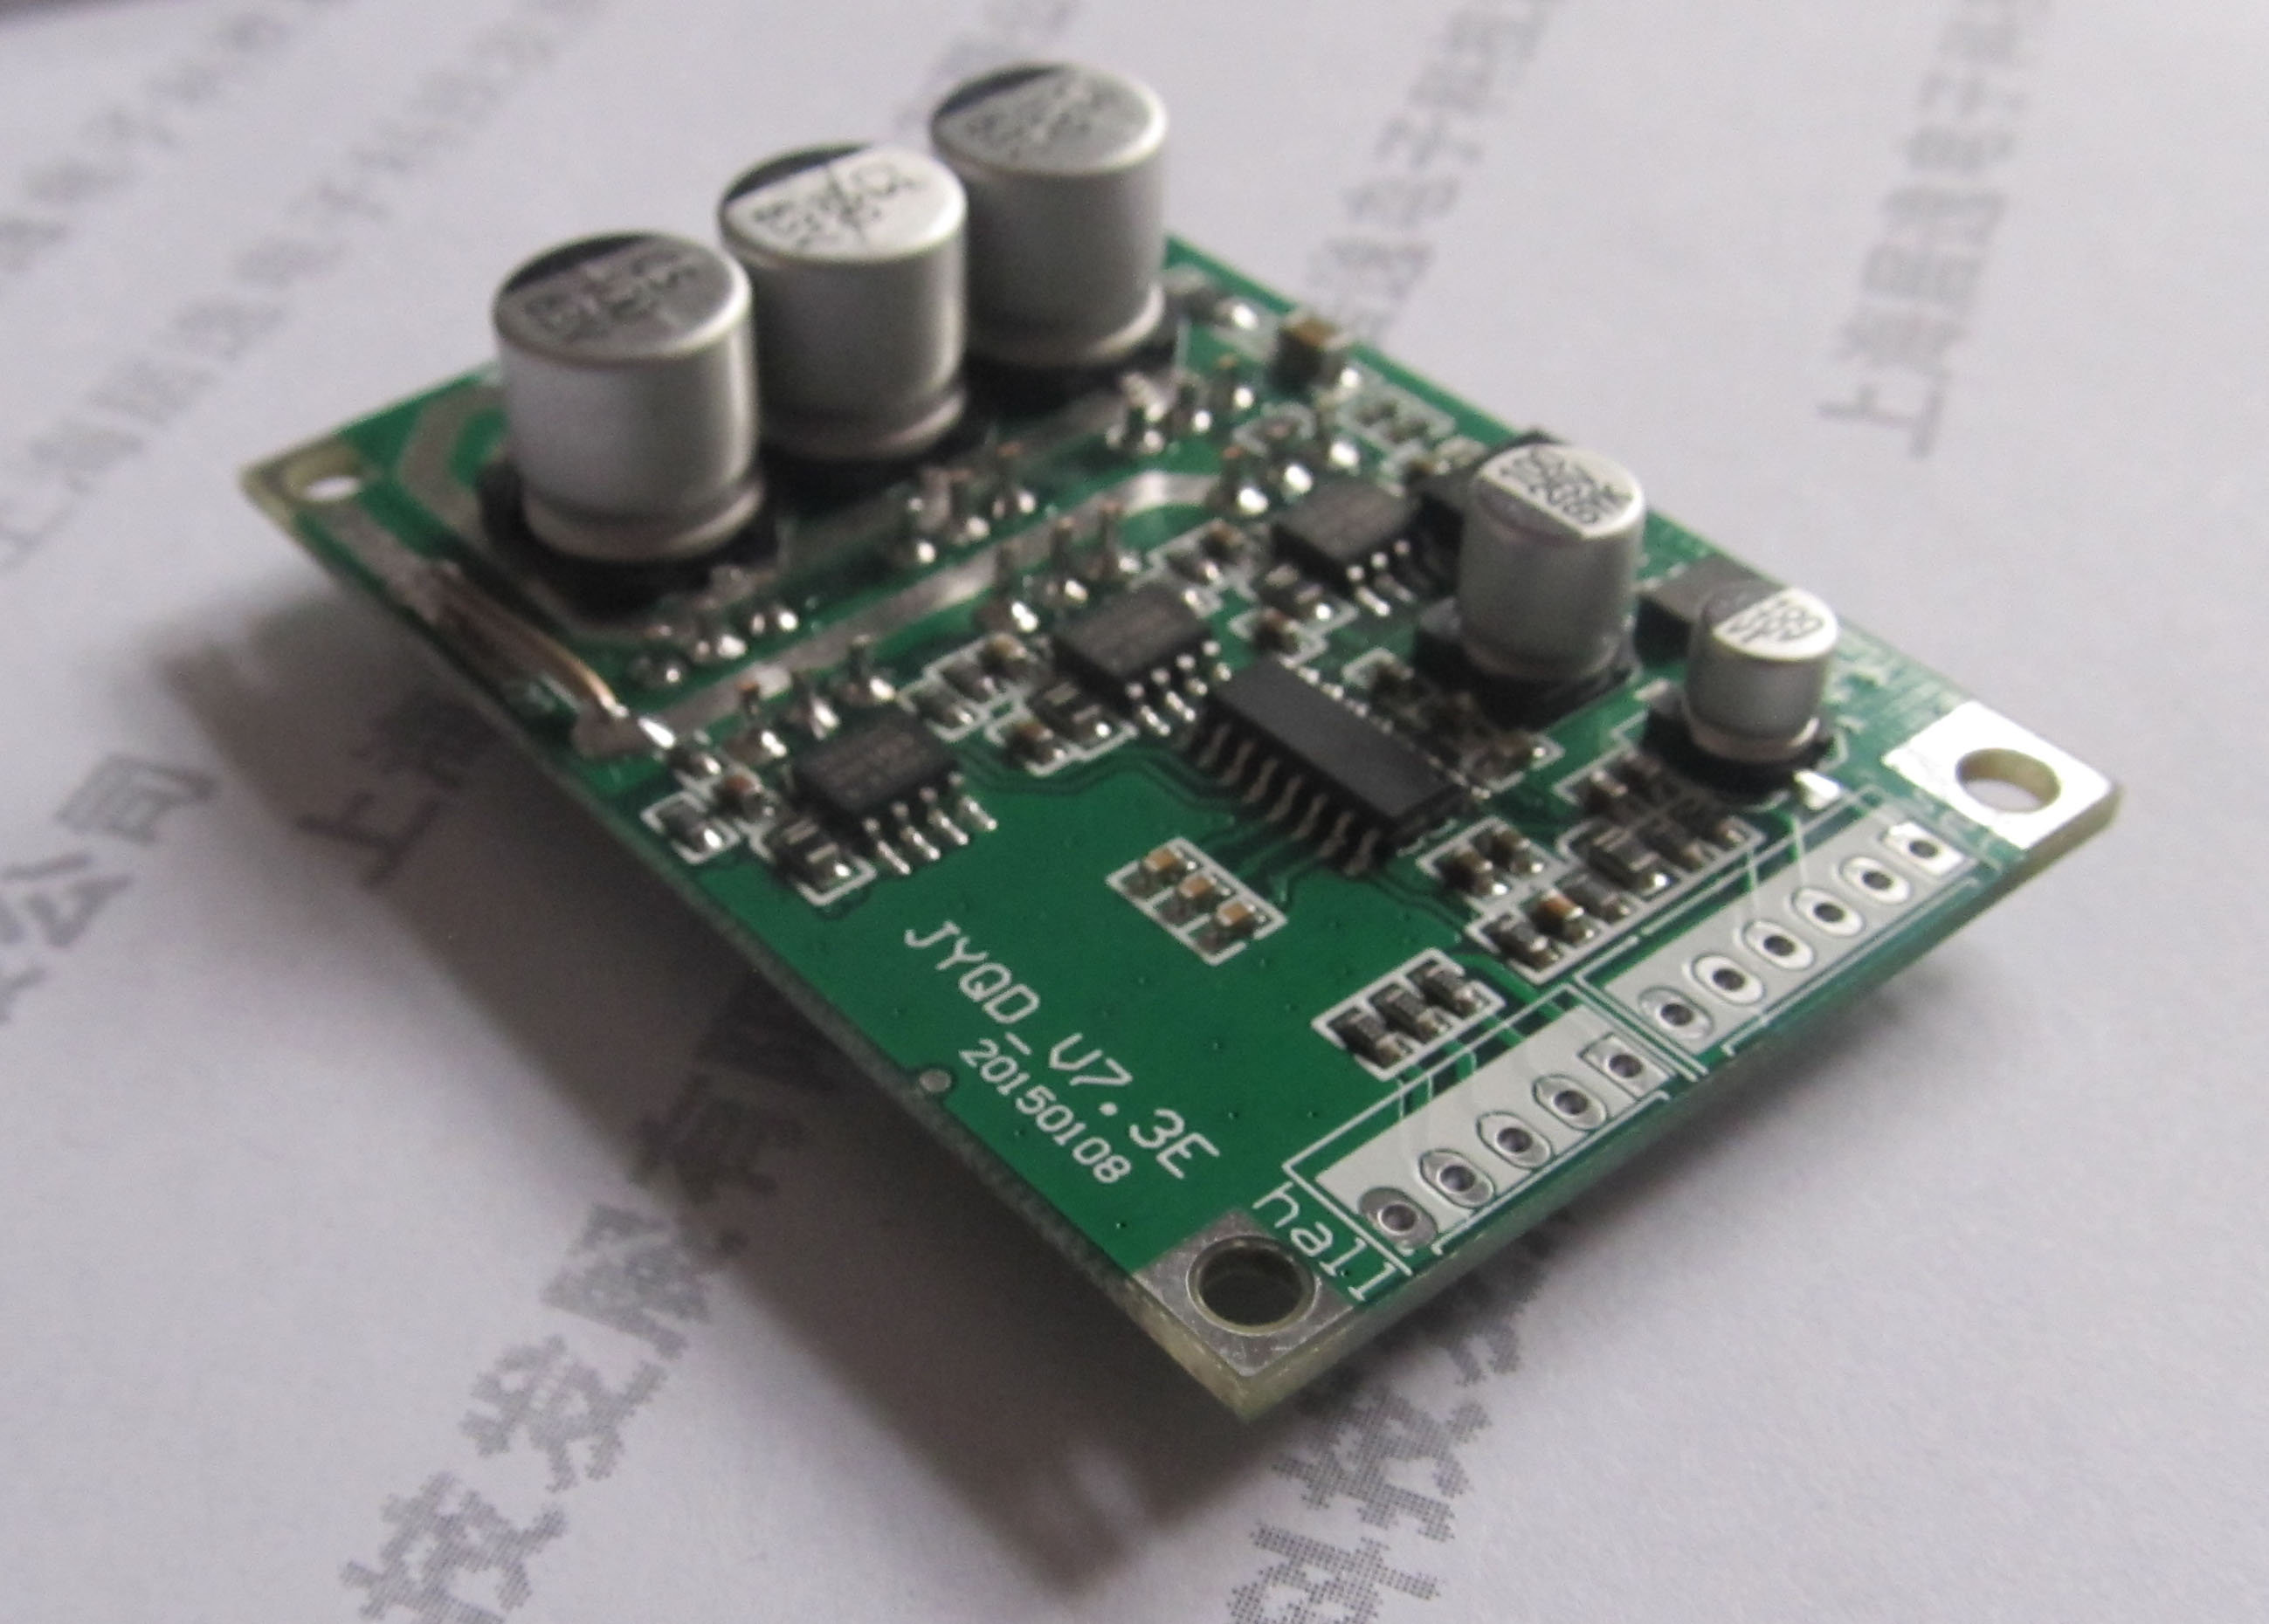 Usd 1713 Brushless Dc Motor Controller 57 With Bldc Circuit Electronic Hall Drive Jy01